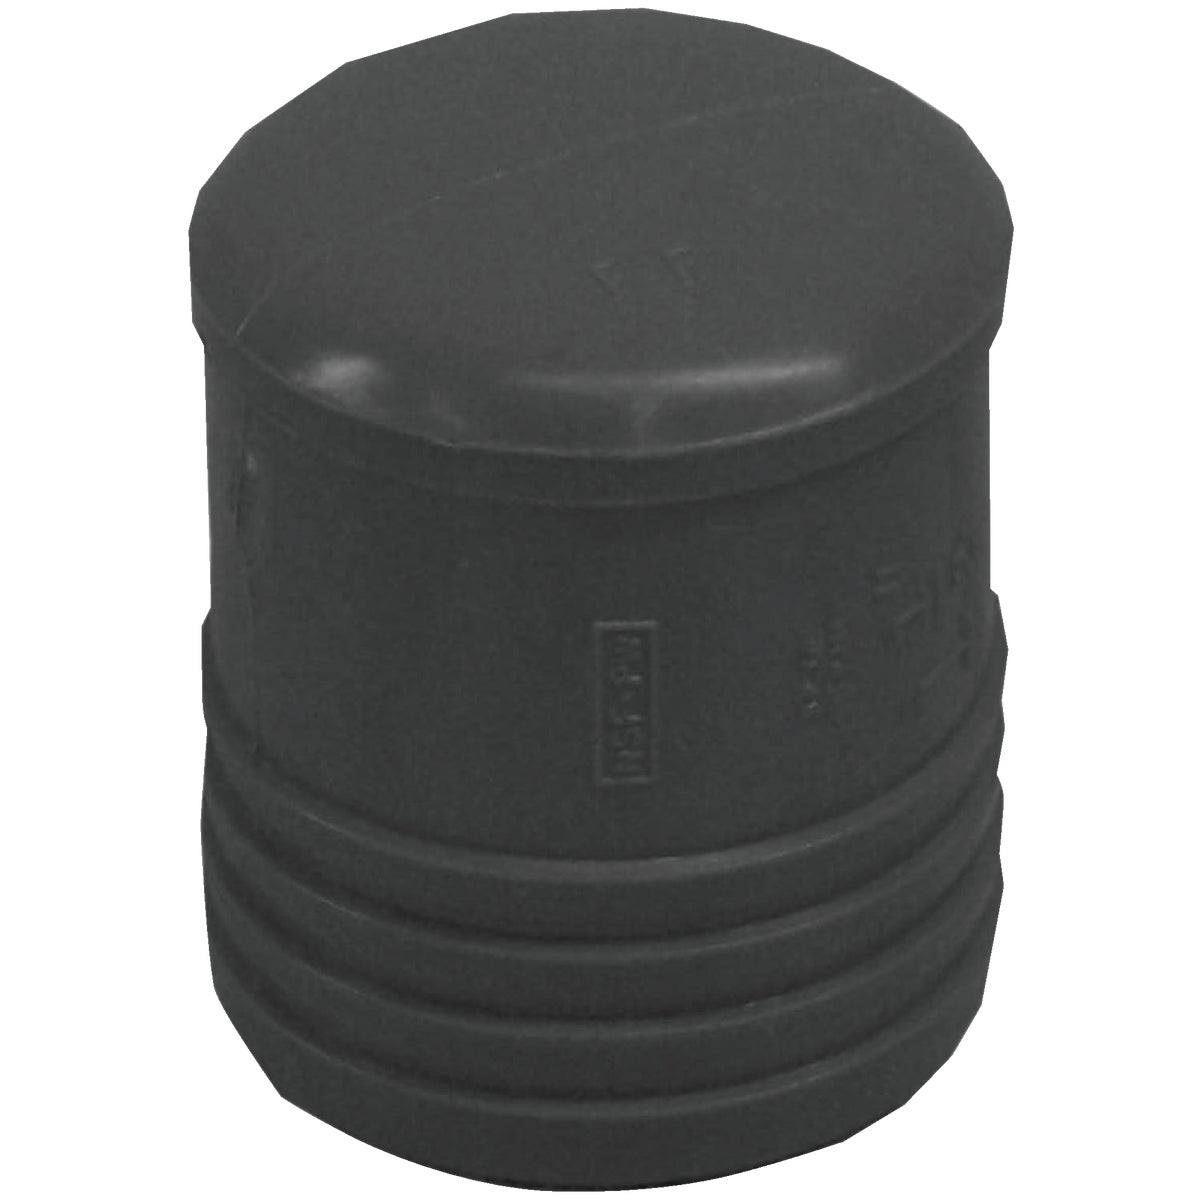 "1-1/2"" POLY INSERT PLUG - 351835 by Genova Inc"